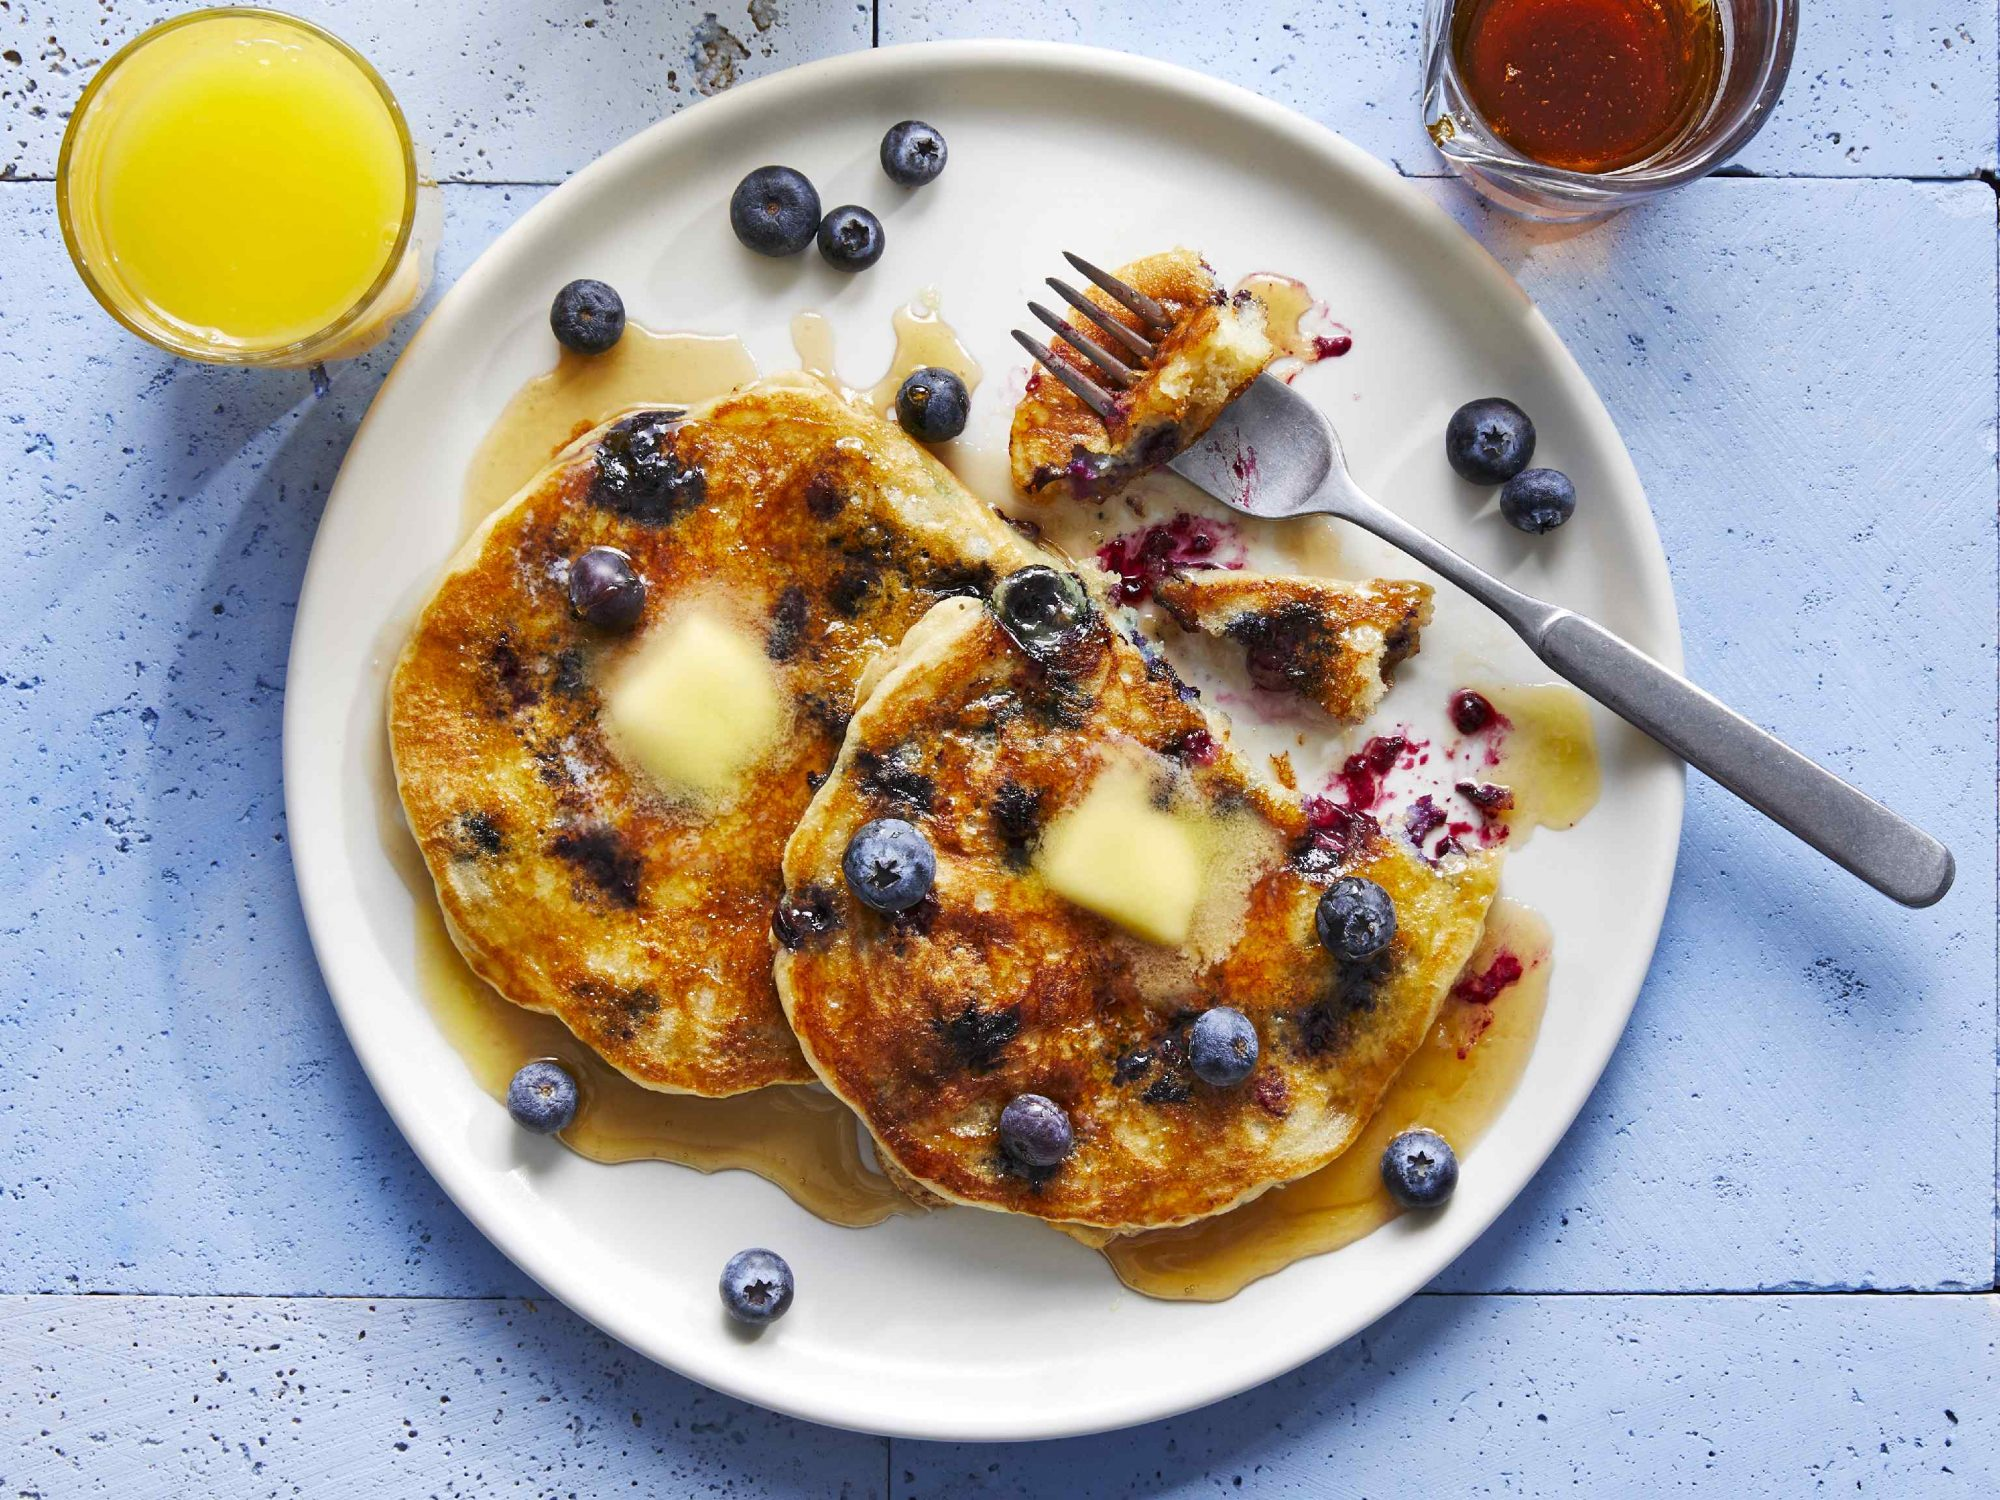 mr - Blueberry Pancakes Image